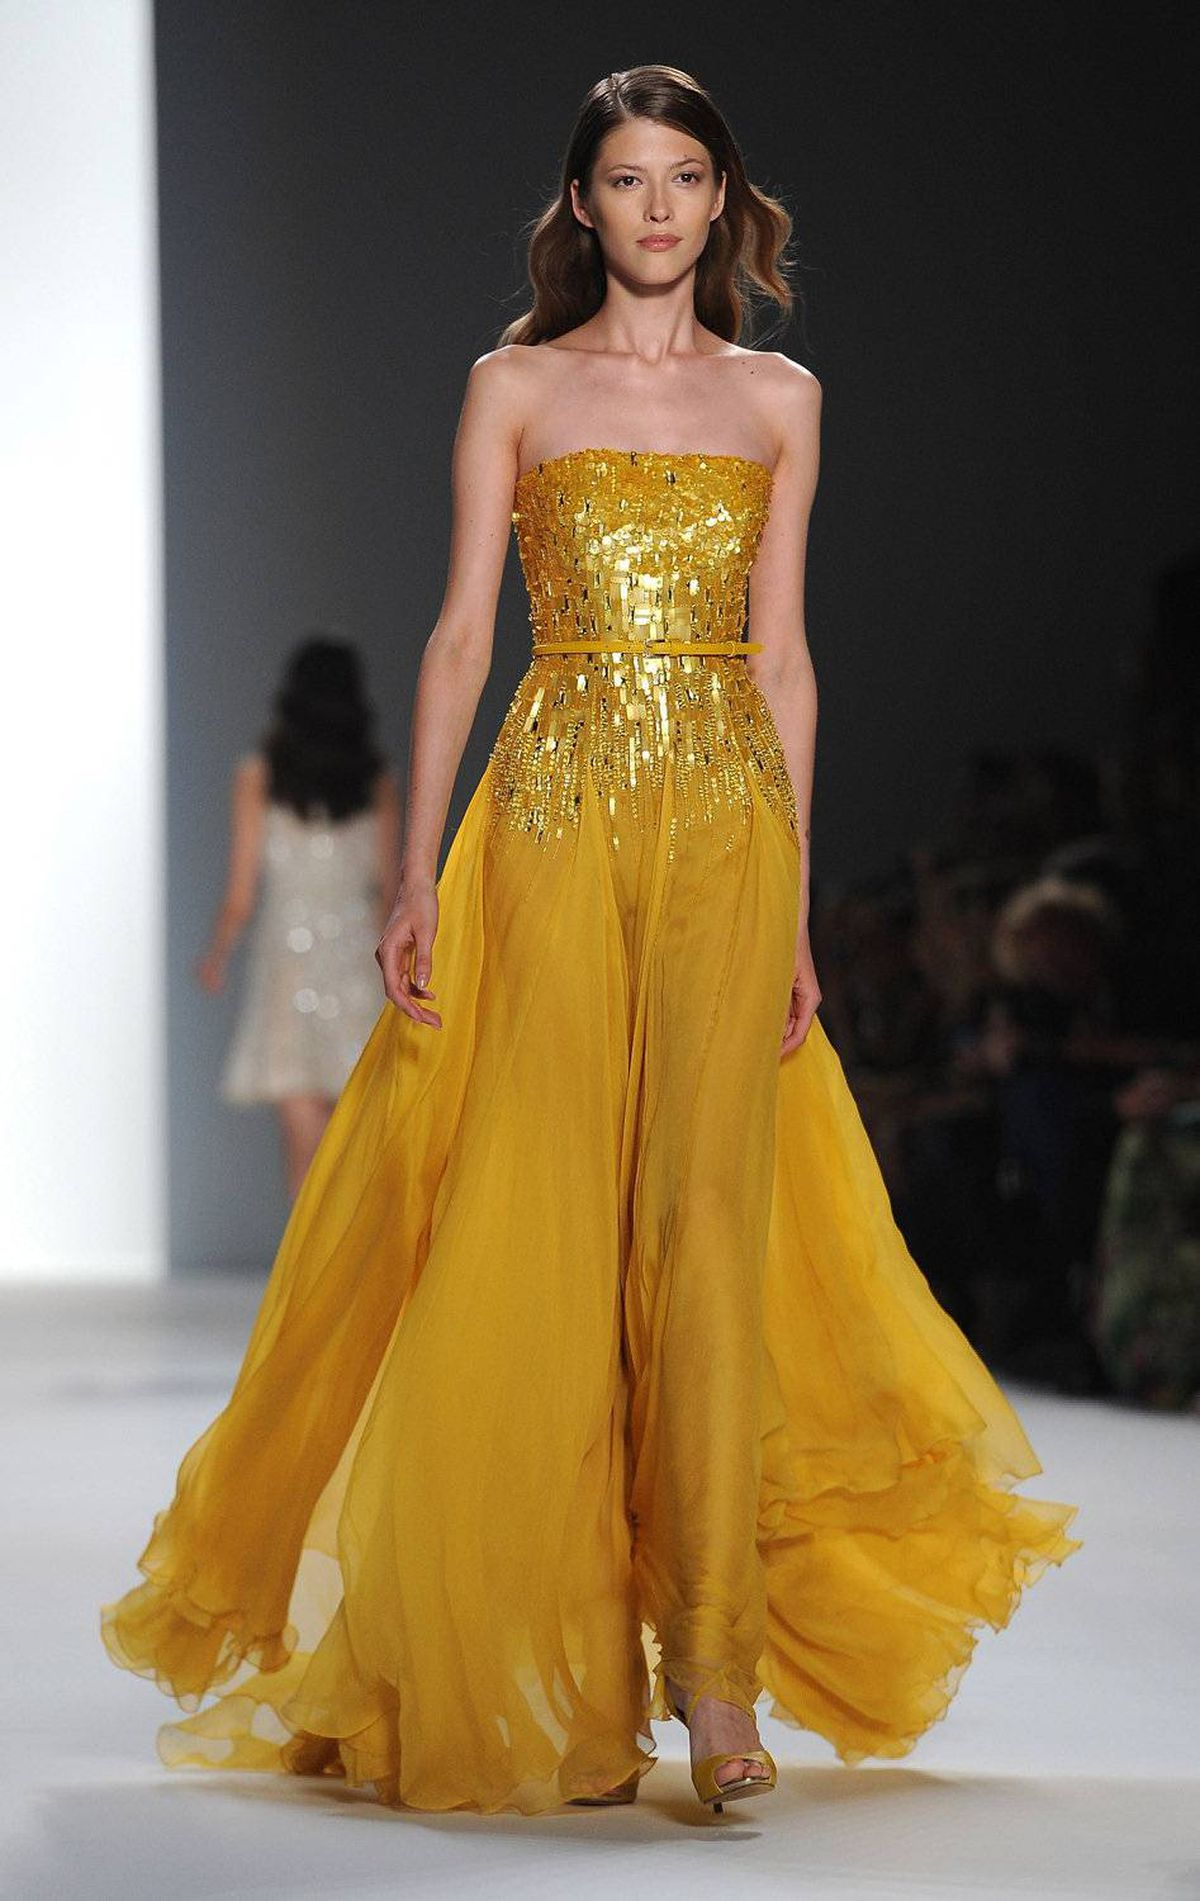 A model presents a creation by Lebanese designer Elie Saab as part of his spring/summer 2012 women's ready-to-wear fashion collection show in Paris, October 5, 2011.